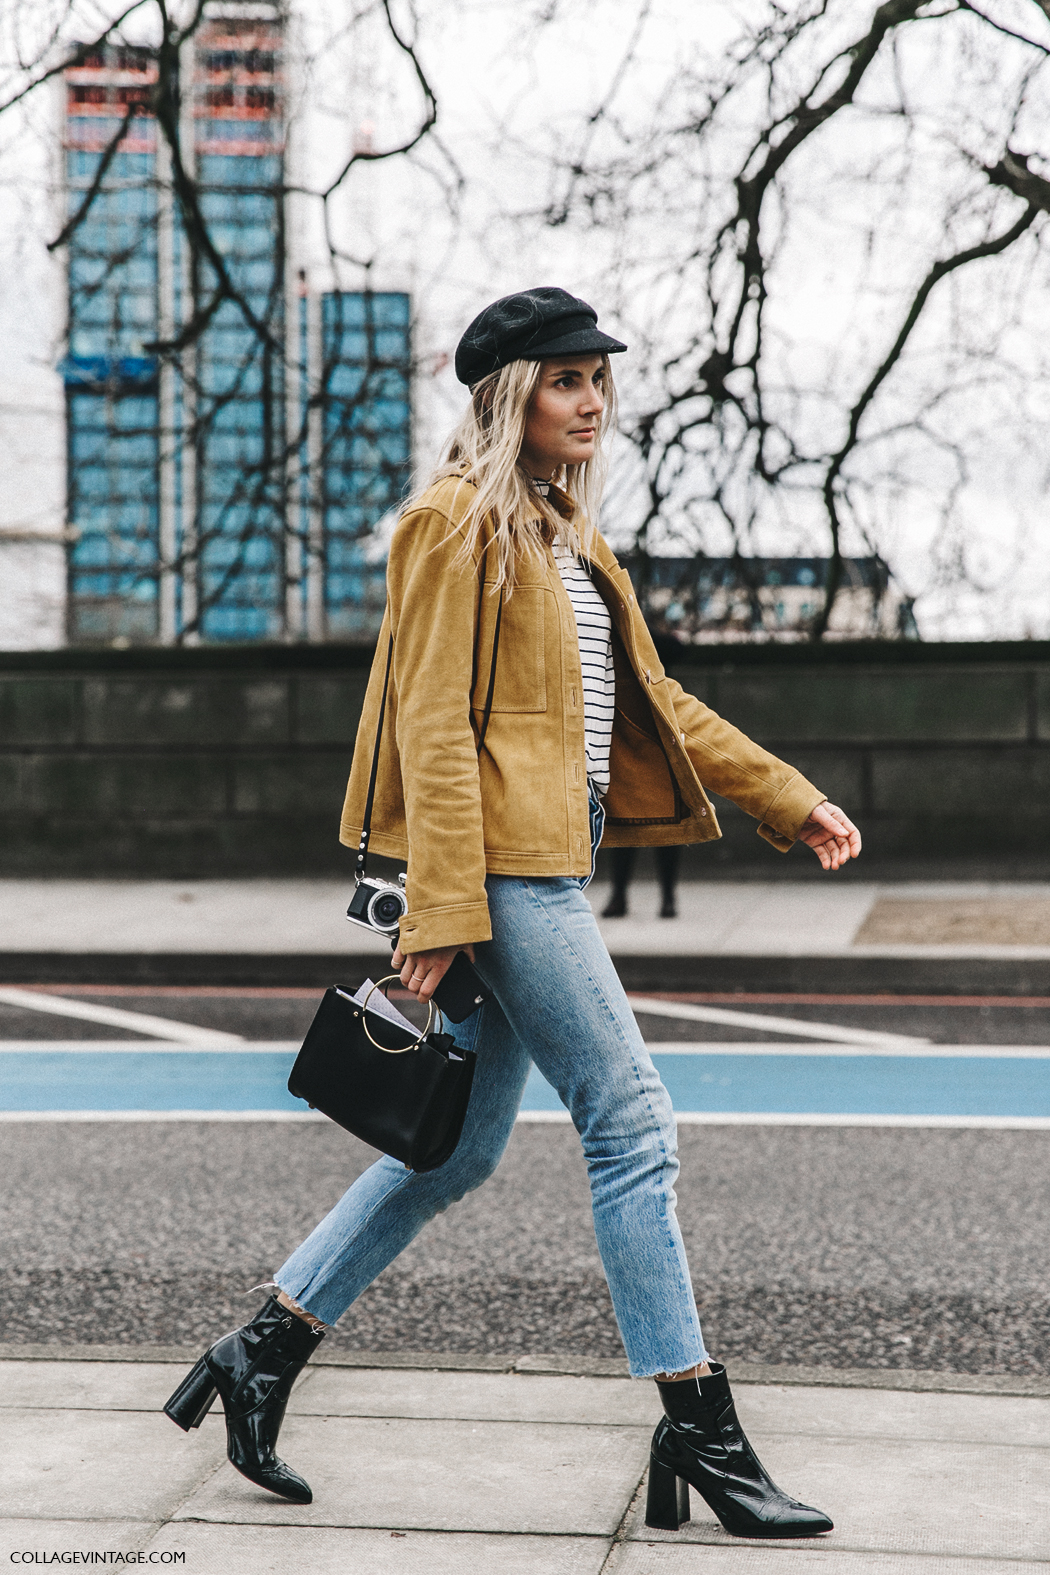 Street Style At London Fashion Week With Anouk: STREET STYLE LFW II